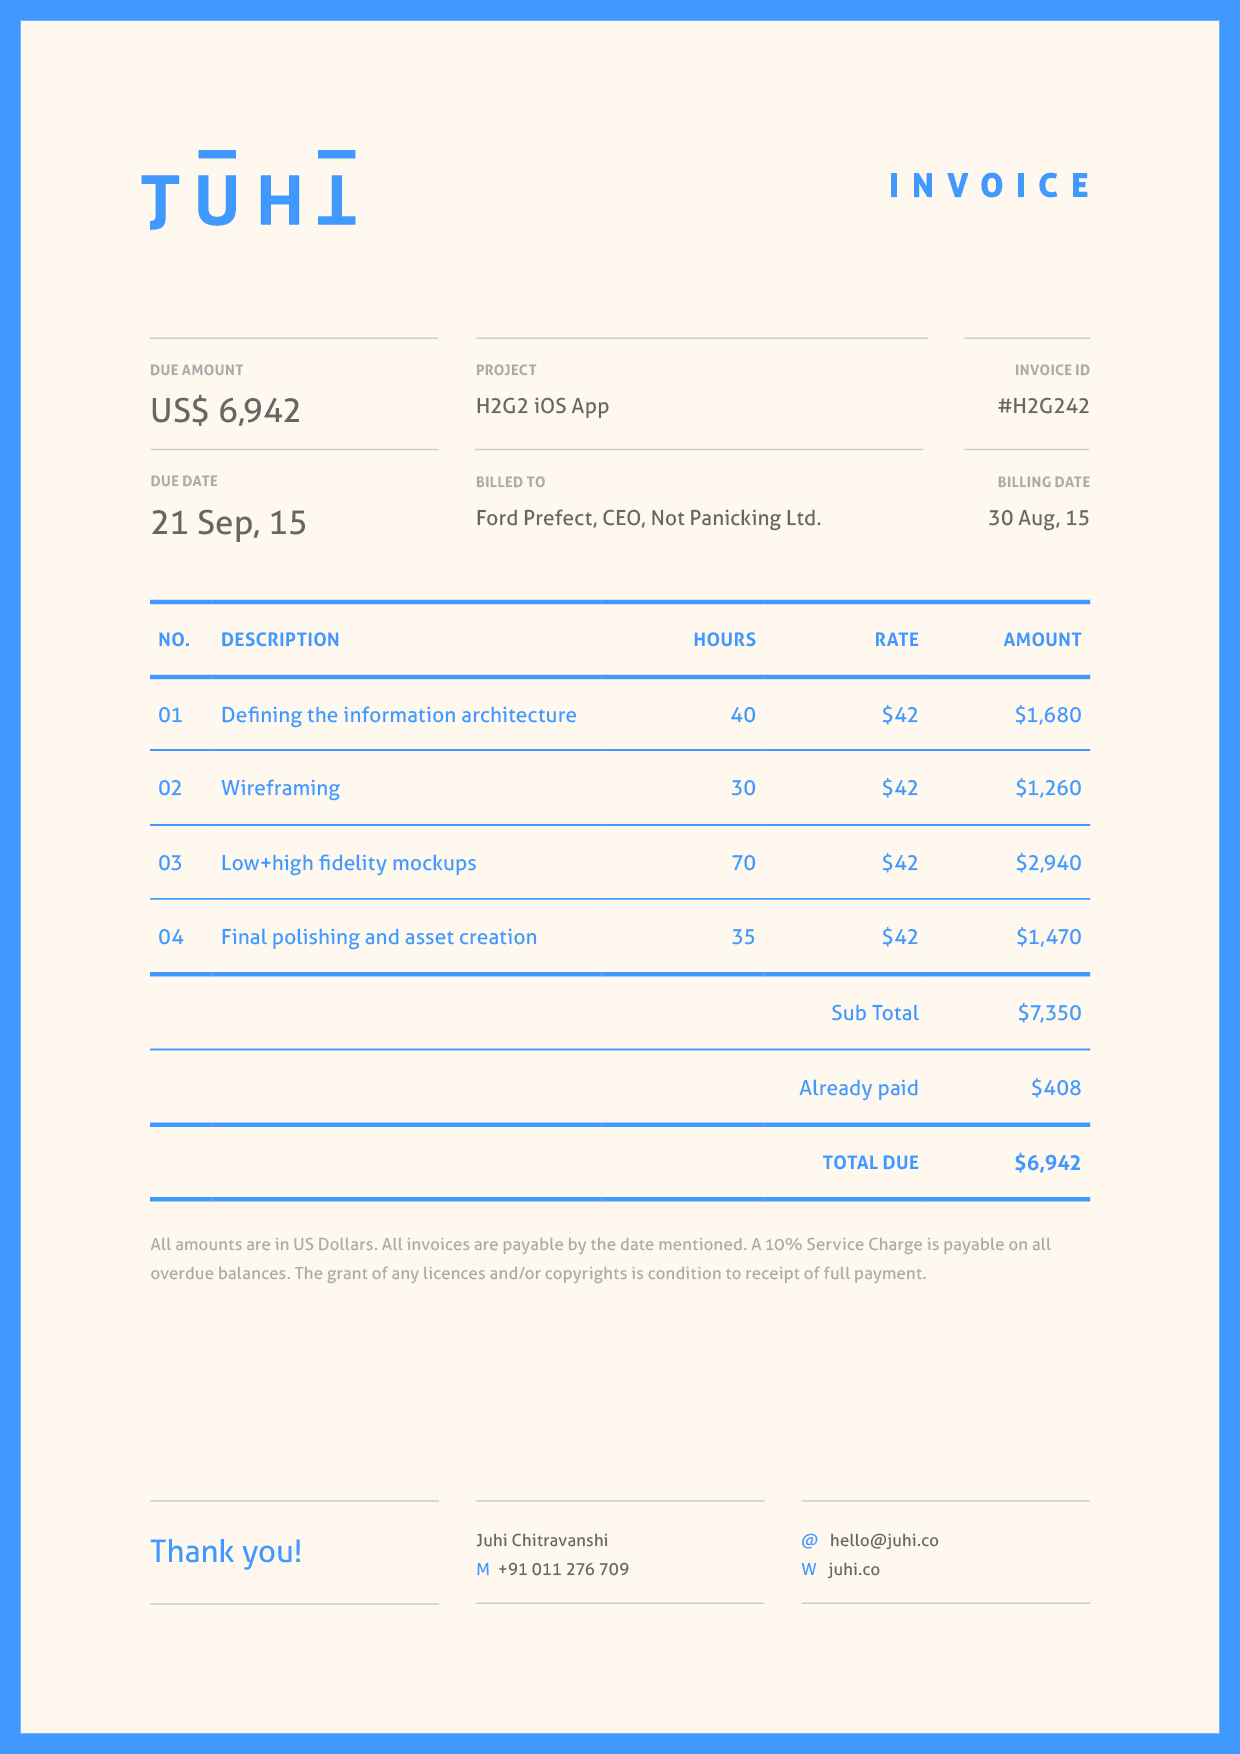 Pigbrotherus  Prepossessing Dont Hold Back On Your Invoice  Inspiring Designs  With Fair Invoice By Juhi Chitravanshi Follow With Attractive Example Of Vat Invoice Also Commercial Invoice Proforma Invoice In Addition Quotation Invoice Template And Cleaning Services Invoice Sample As Well As Difference Between Proforma Invoice And Invoice Additionally Invoice With Vat From Inspirationfeedcom With Pigbrotherus  Fair Dont Hold Back On Your Invoice  Inspiring Designs  With Attractive Invoice By Juhi Chitravanshi Follow And Prepossessing Example Of Vat Invoice Also Commercial Invoice Proforma Invoice In Addition Quotation Invoice Template From Inspirationfeedcom